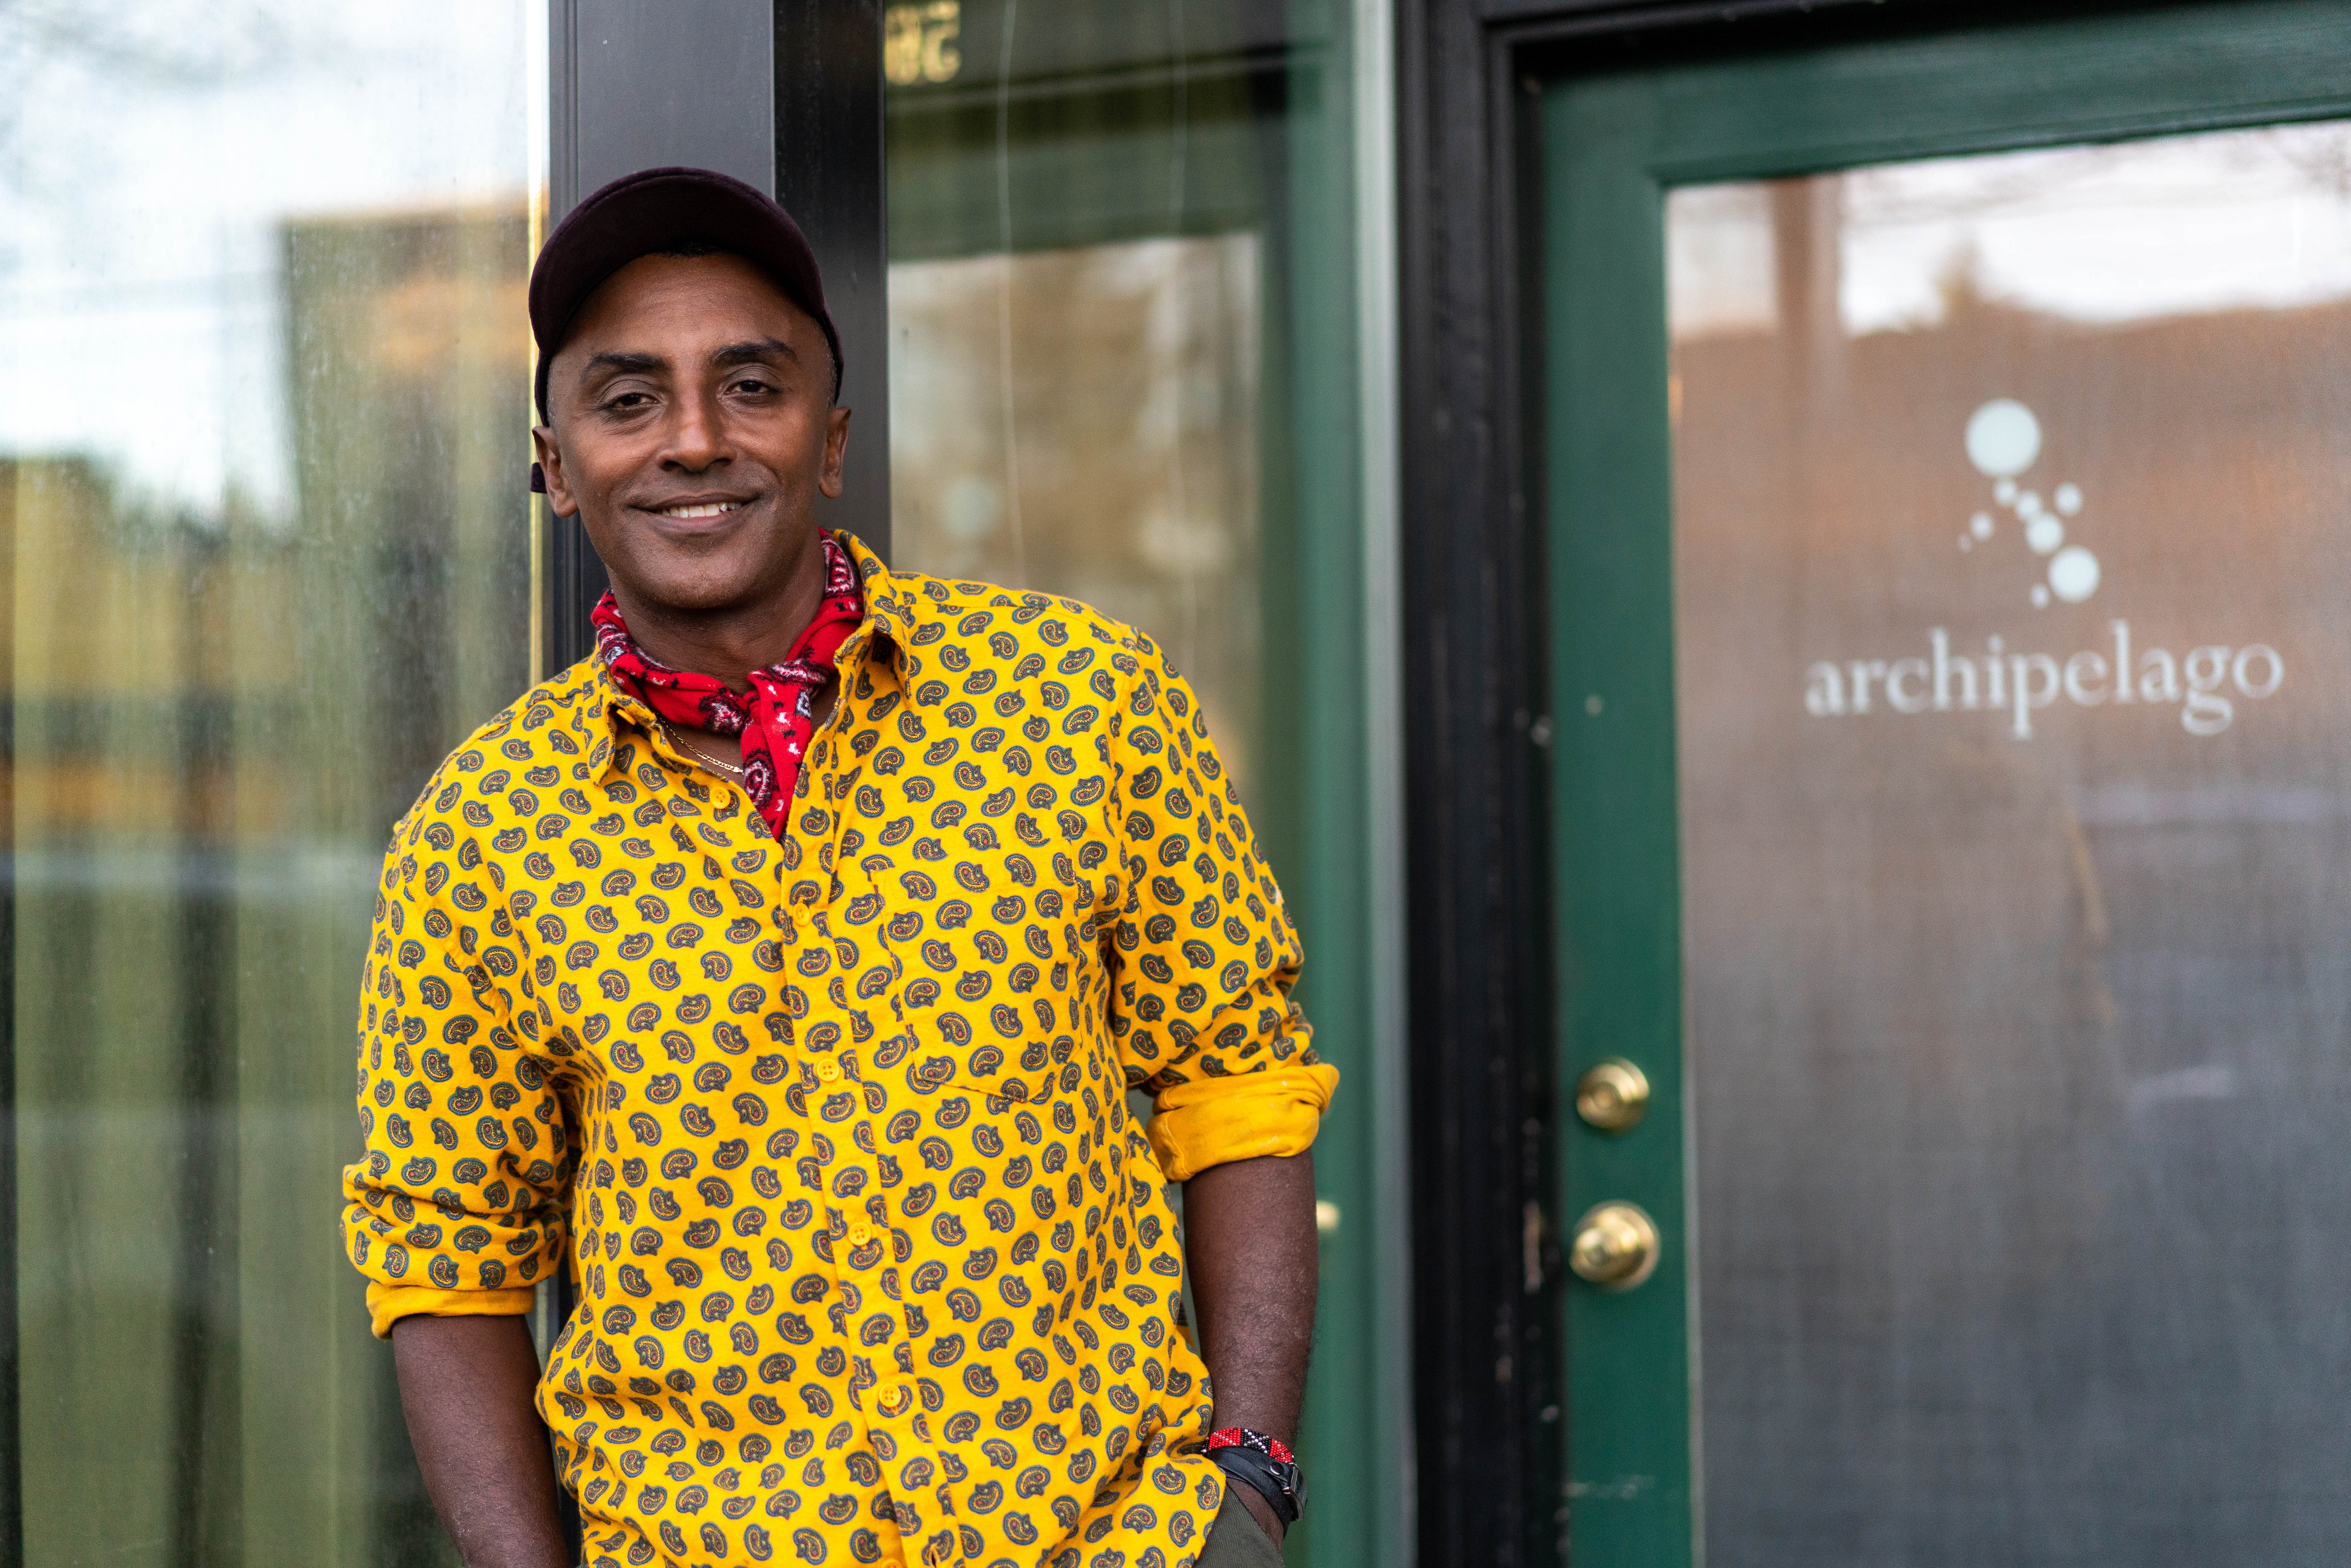 Host Marcus Samuelsson standing in front of Seattle restaurant Archipelago, which is featured in the show.